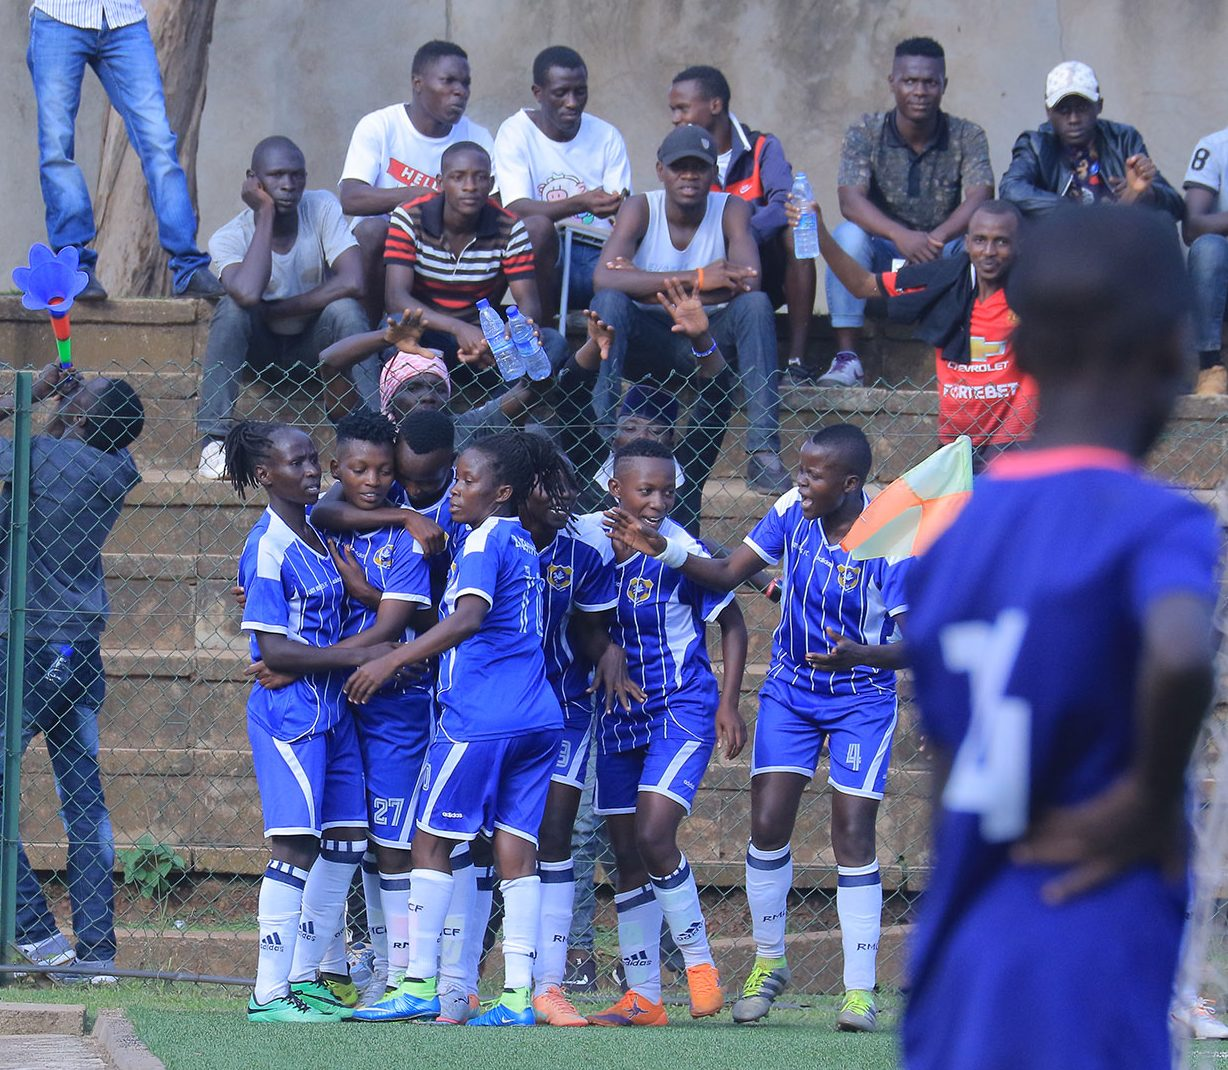 Nabbosa (27) is congratulated by her teammates after scoring the all-important goal in the victory over Kampala Queens on Thursday. (PHOTOS/FUFA)